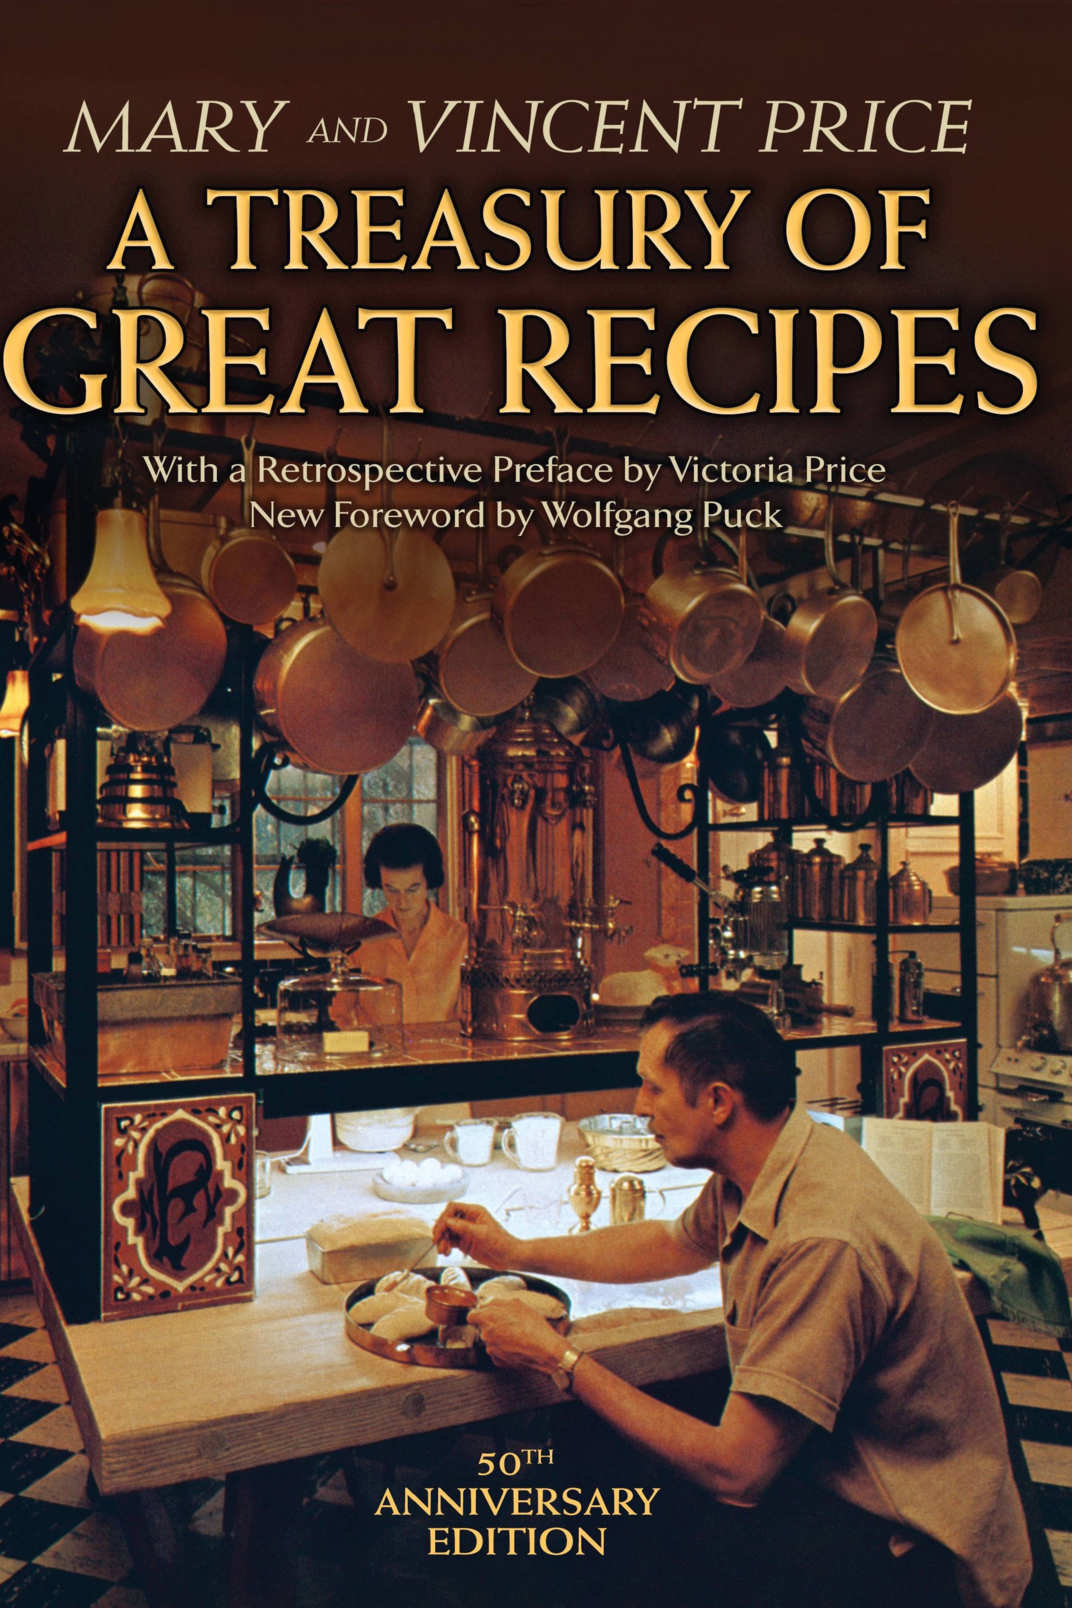 <em>A Treasury of Great Recipes</em> by Mary and Vincent Price